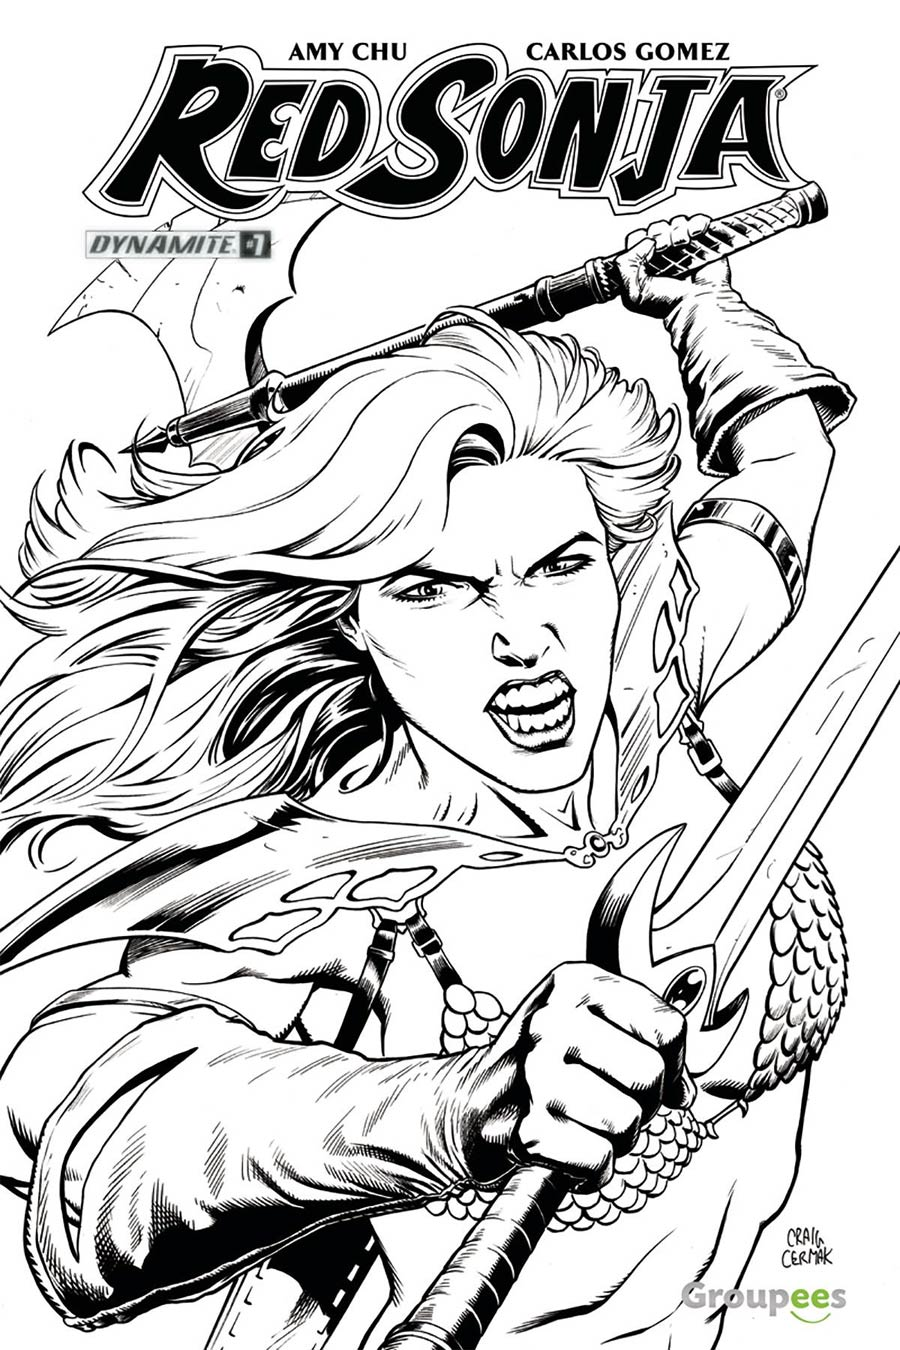 Red Sonja Vol 7 #7 Cover J Groupees Exclusive Craig Cermak Black & White Variant Cover